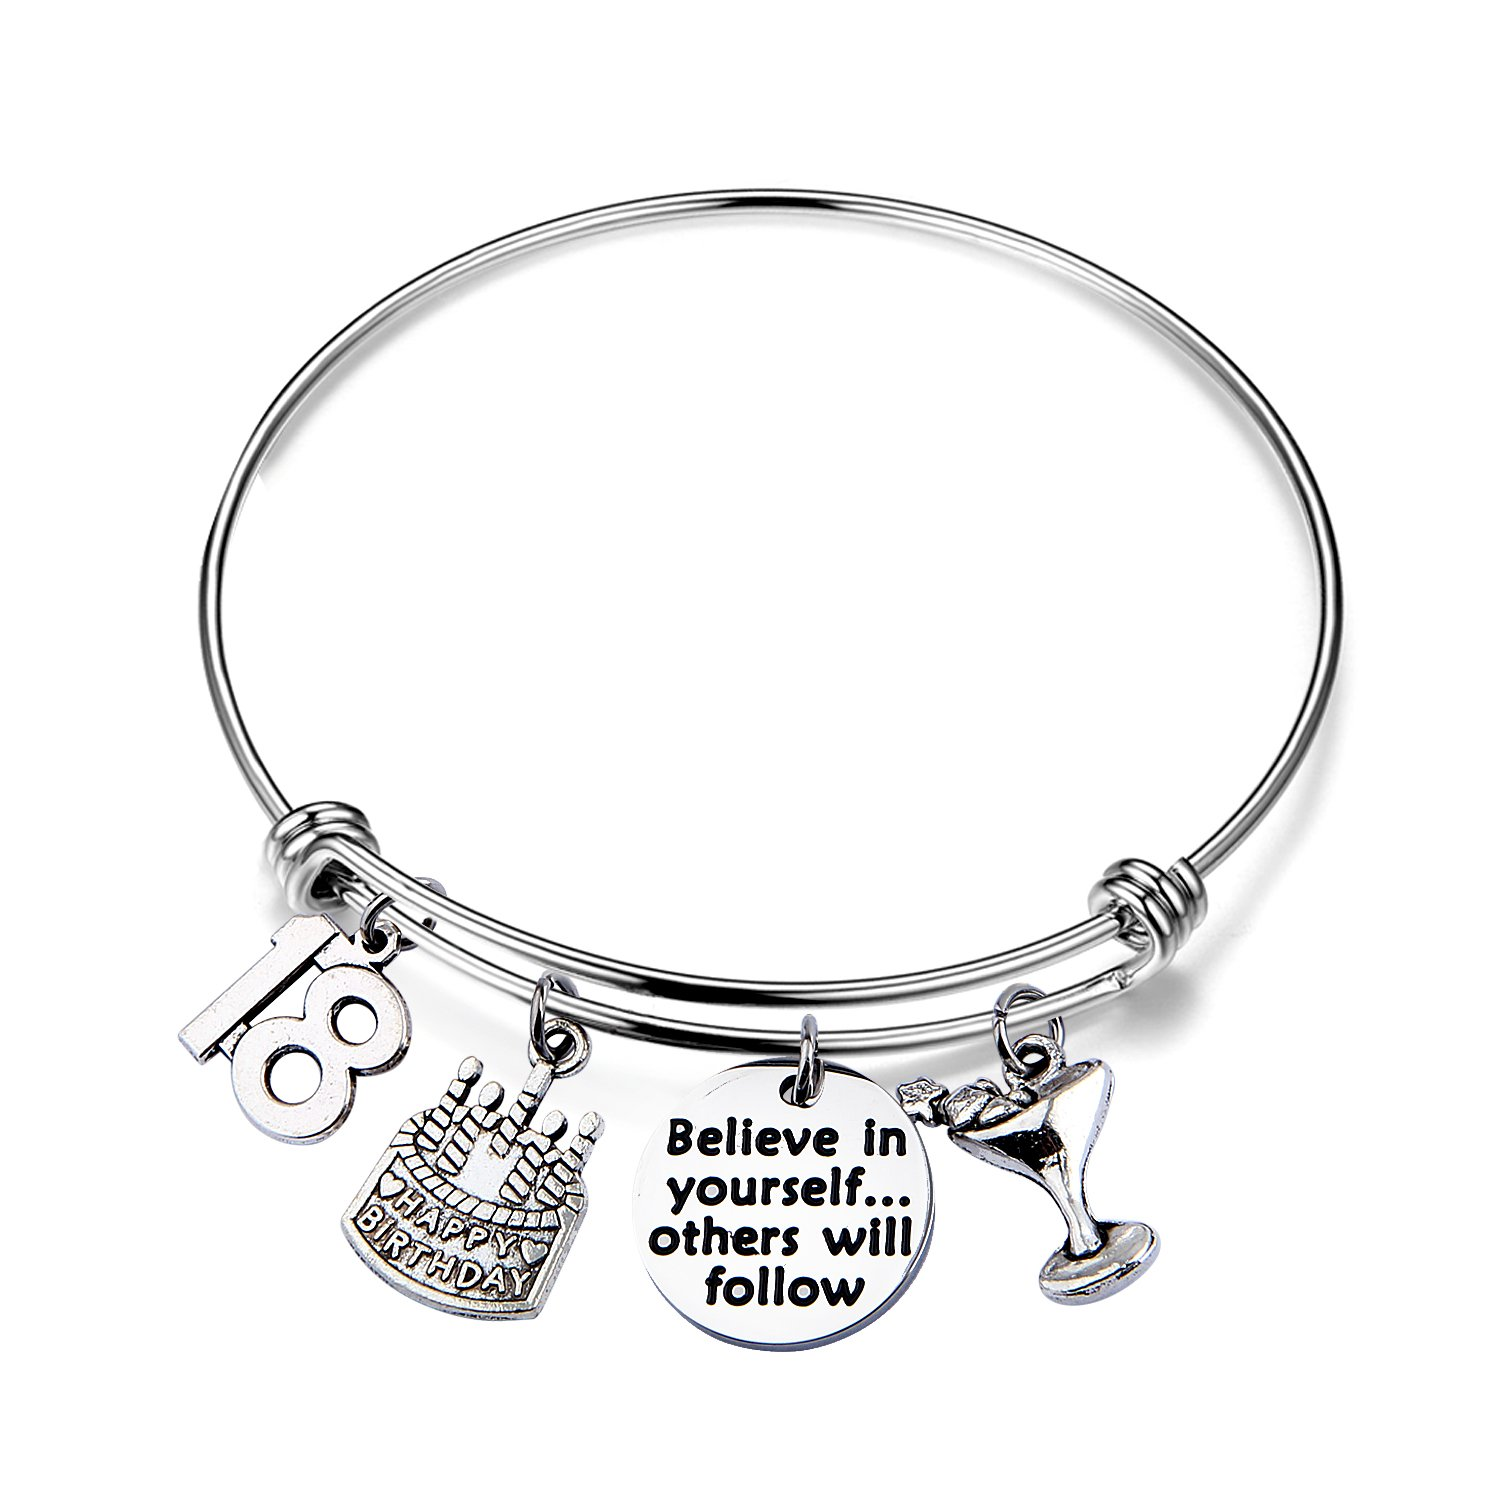 21st Birthday Bracelet 13th Sweet 16 18th Inspiration Birthday Gift Believe in Yourself Anniversary Jewelry